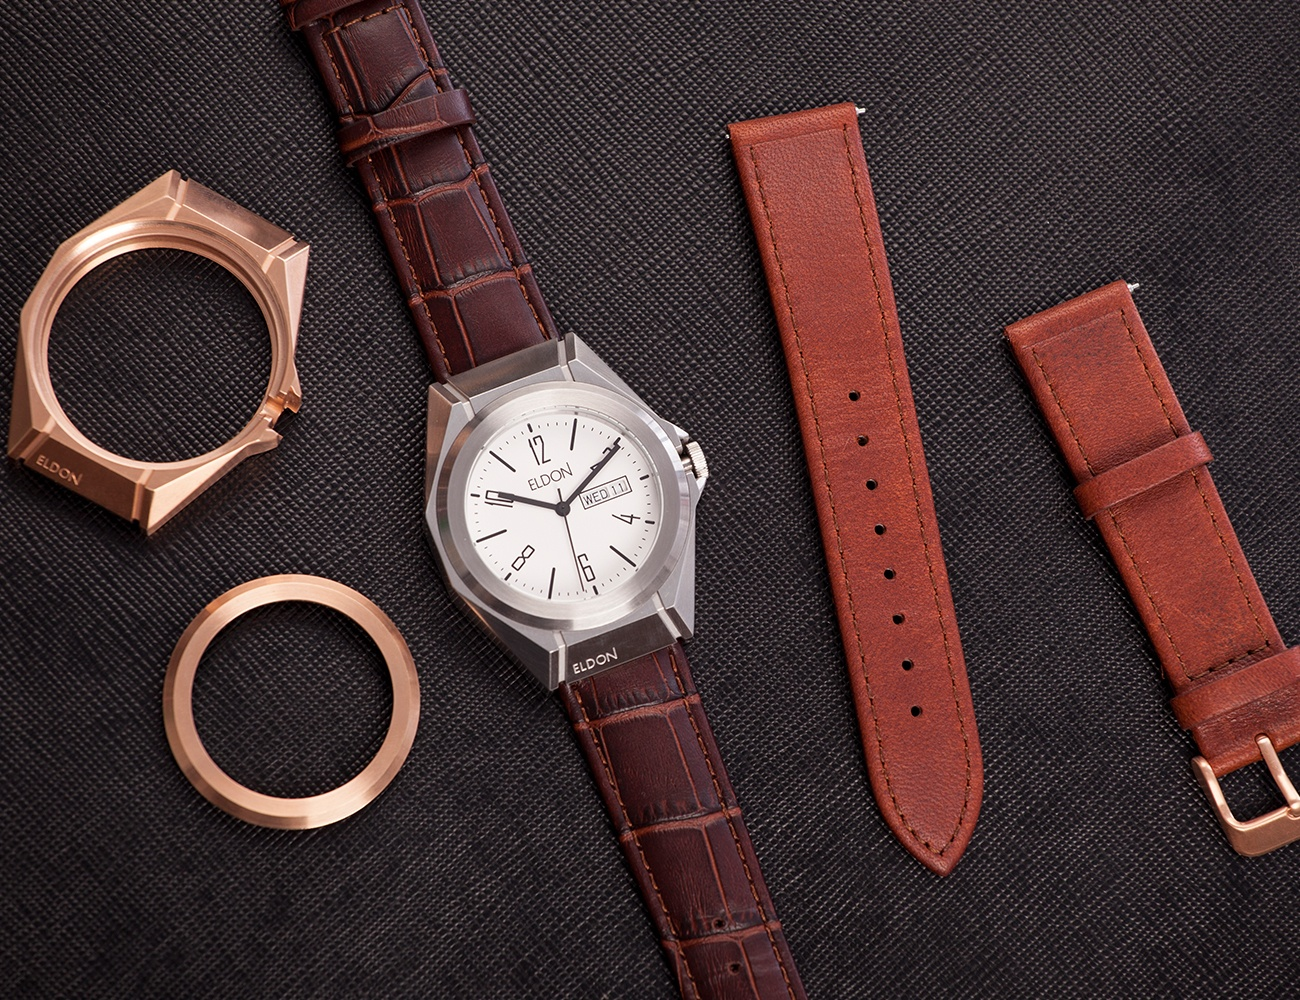 Eldon Watches – The Fully Interchangeable Watch!